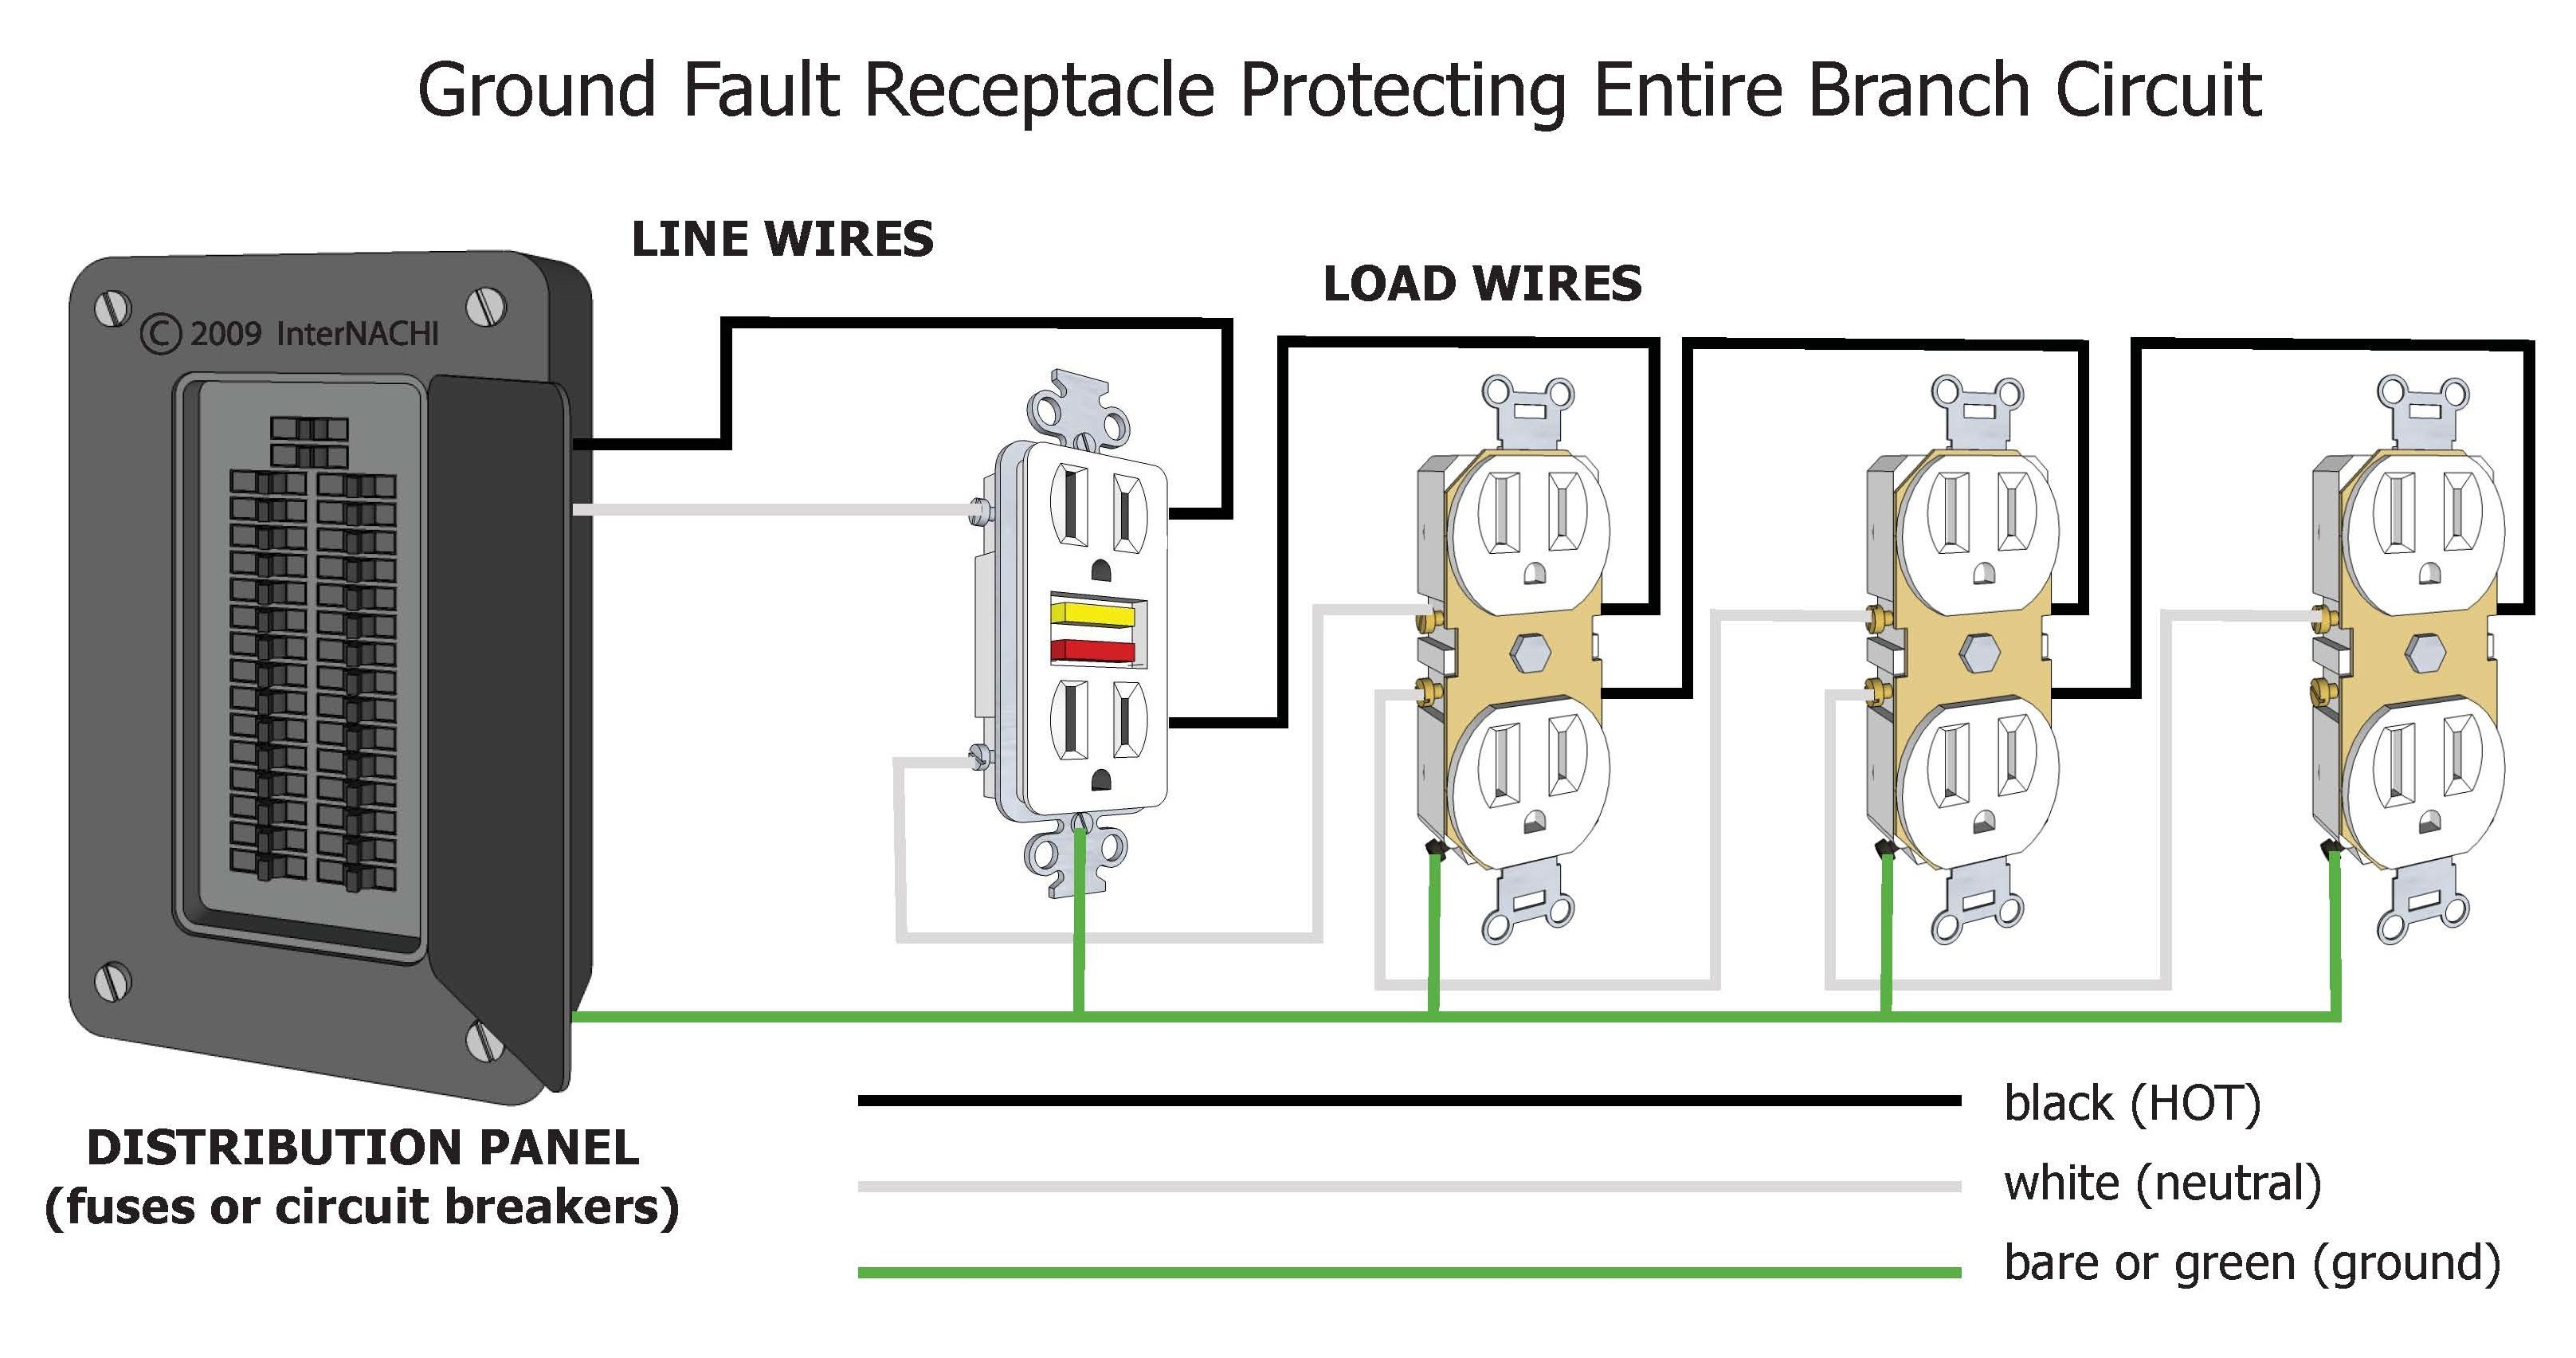 gfci branch circuit color gfci circuit breaker wiring diagram efcaviation com gfci wiring diagram at gsmportal.co